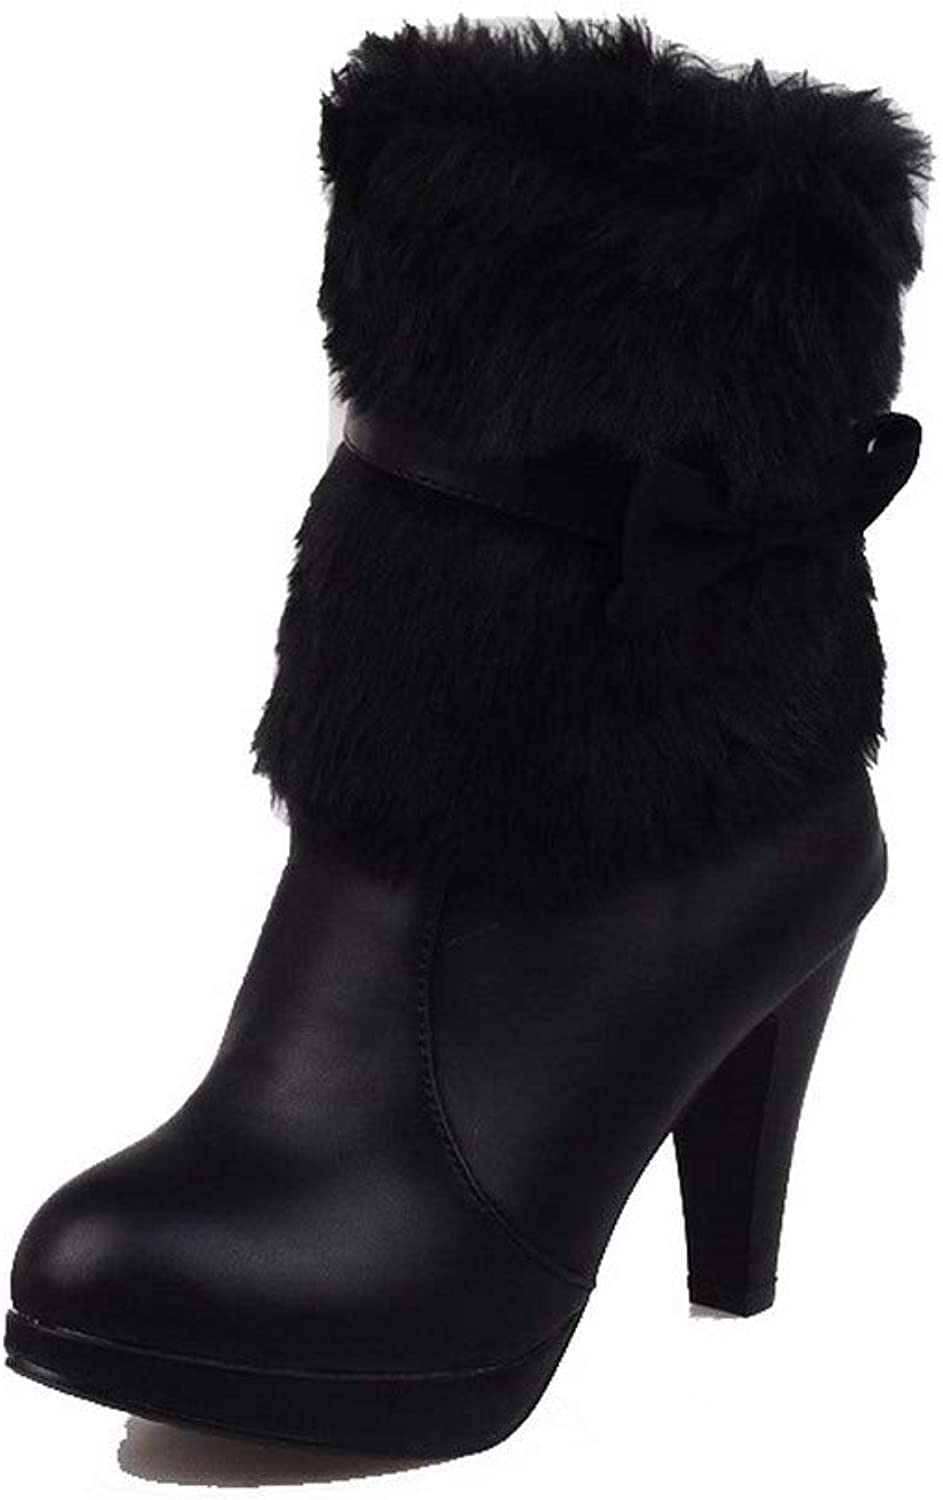 WeenFashion Women's Solid Pu High-Heels Pull-On Closed-Toe Boots, AMGXX120342